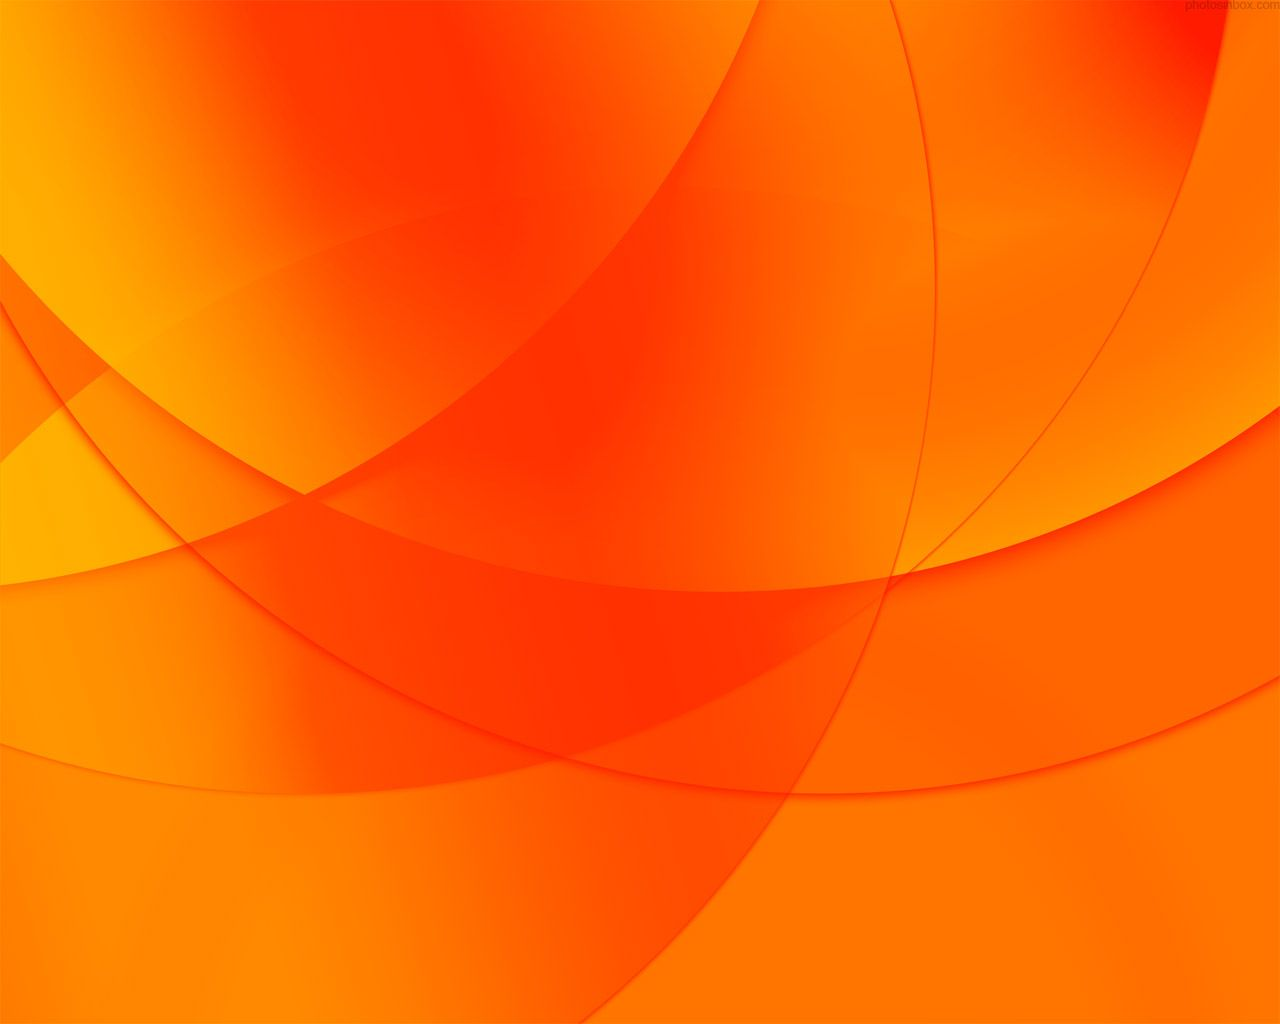 Background wallpapers on this colorful background wallpapers website - Orange Background Google Search